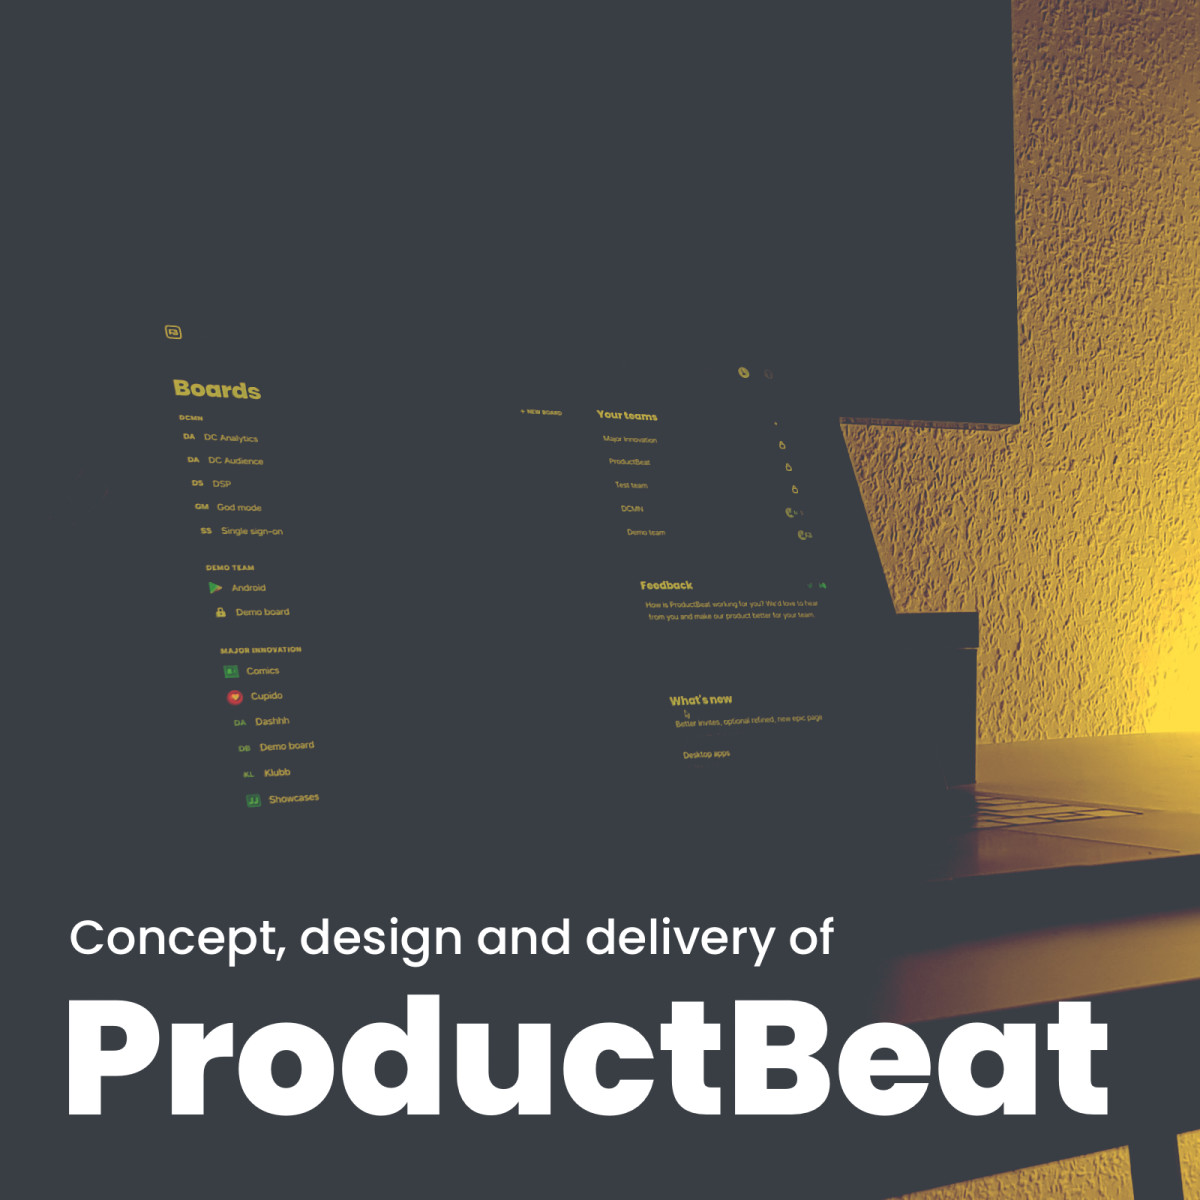 https://productbeatapp.com